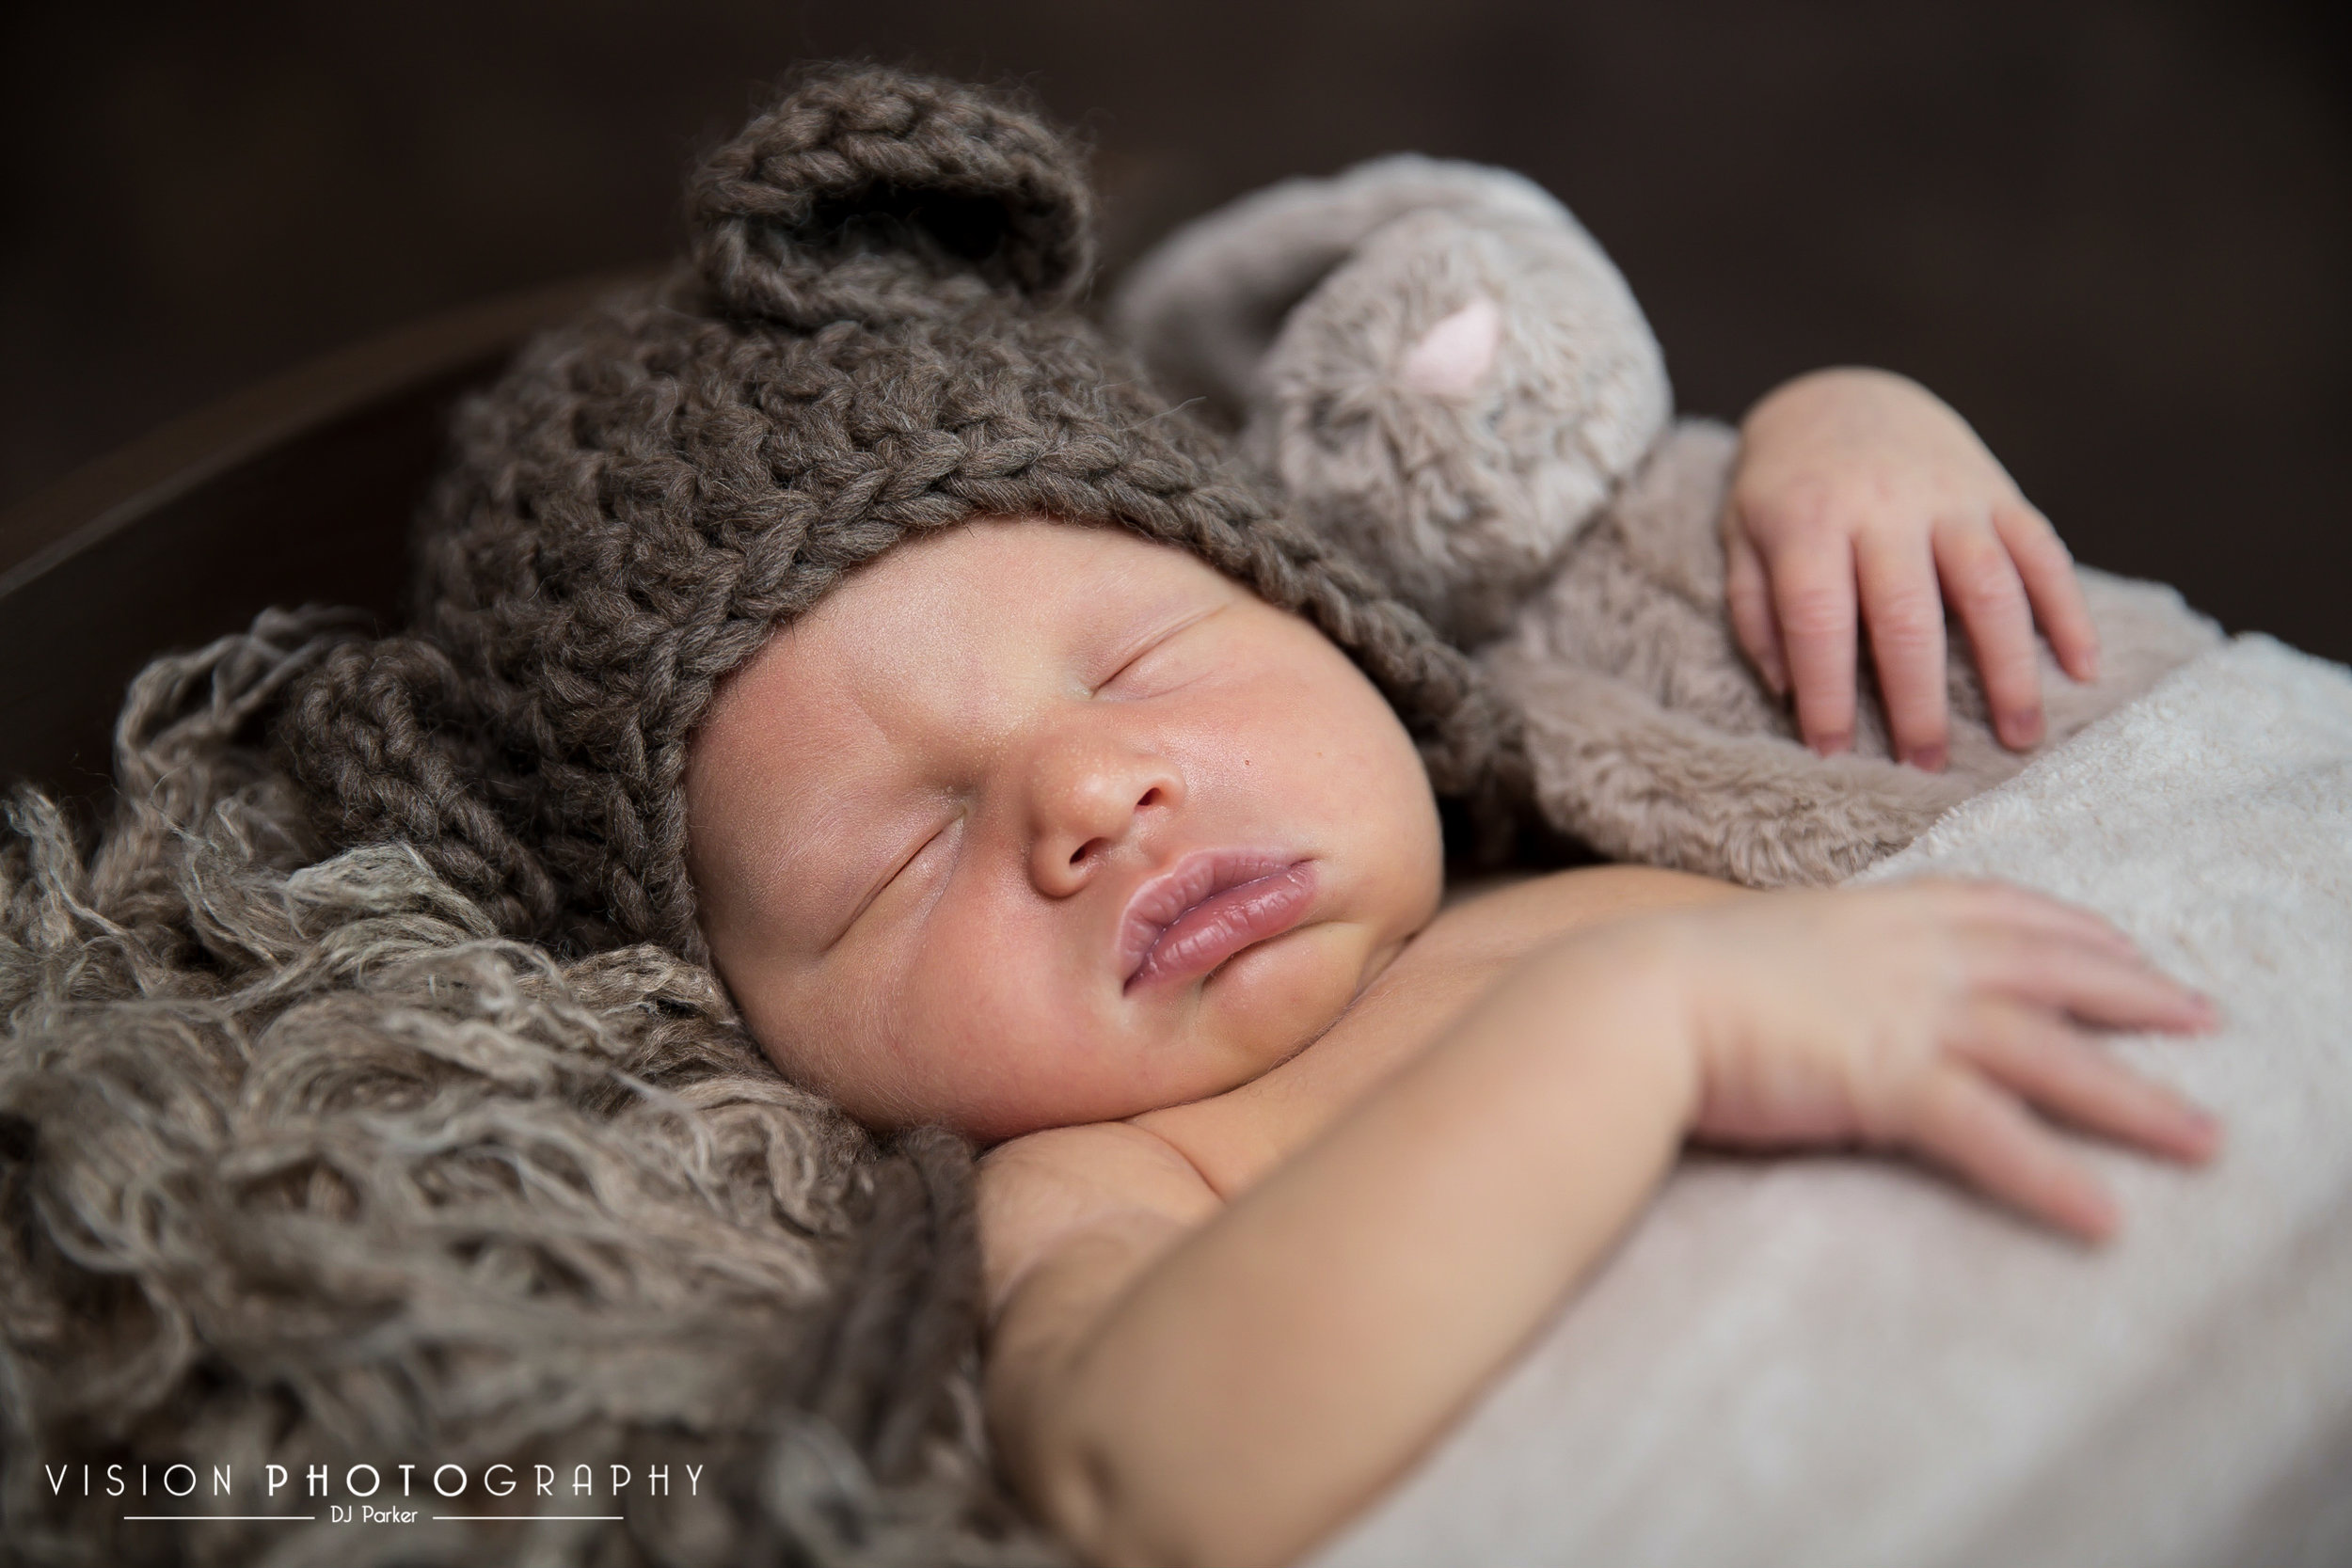 Newborn studio photography prop